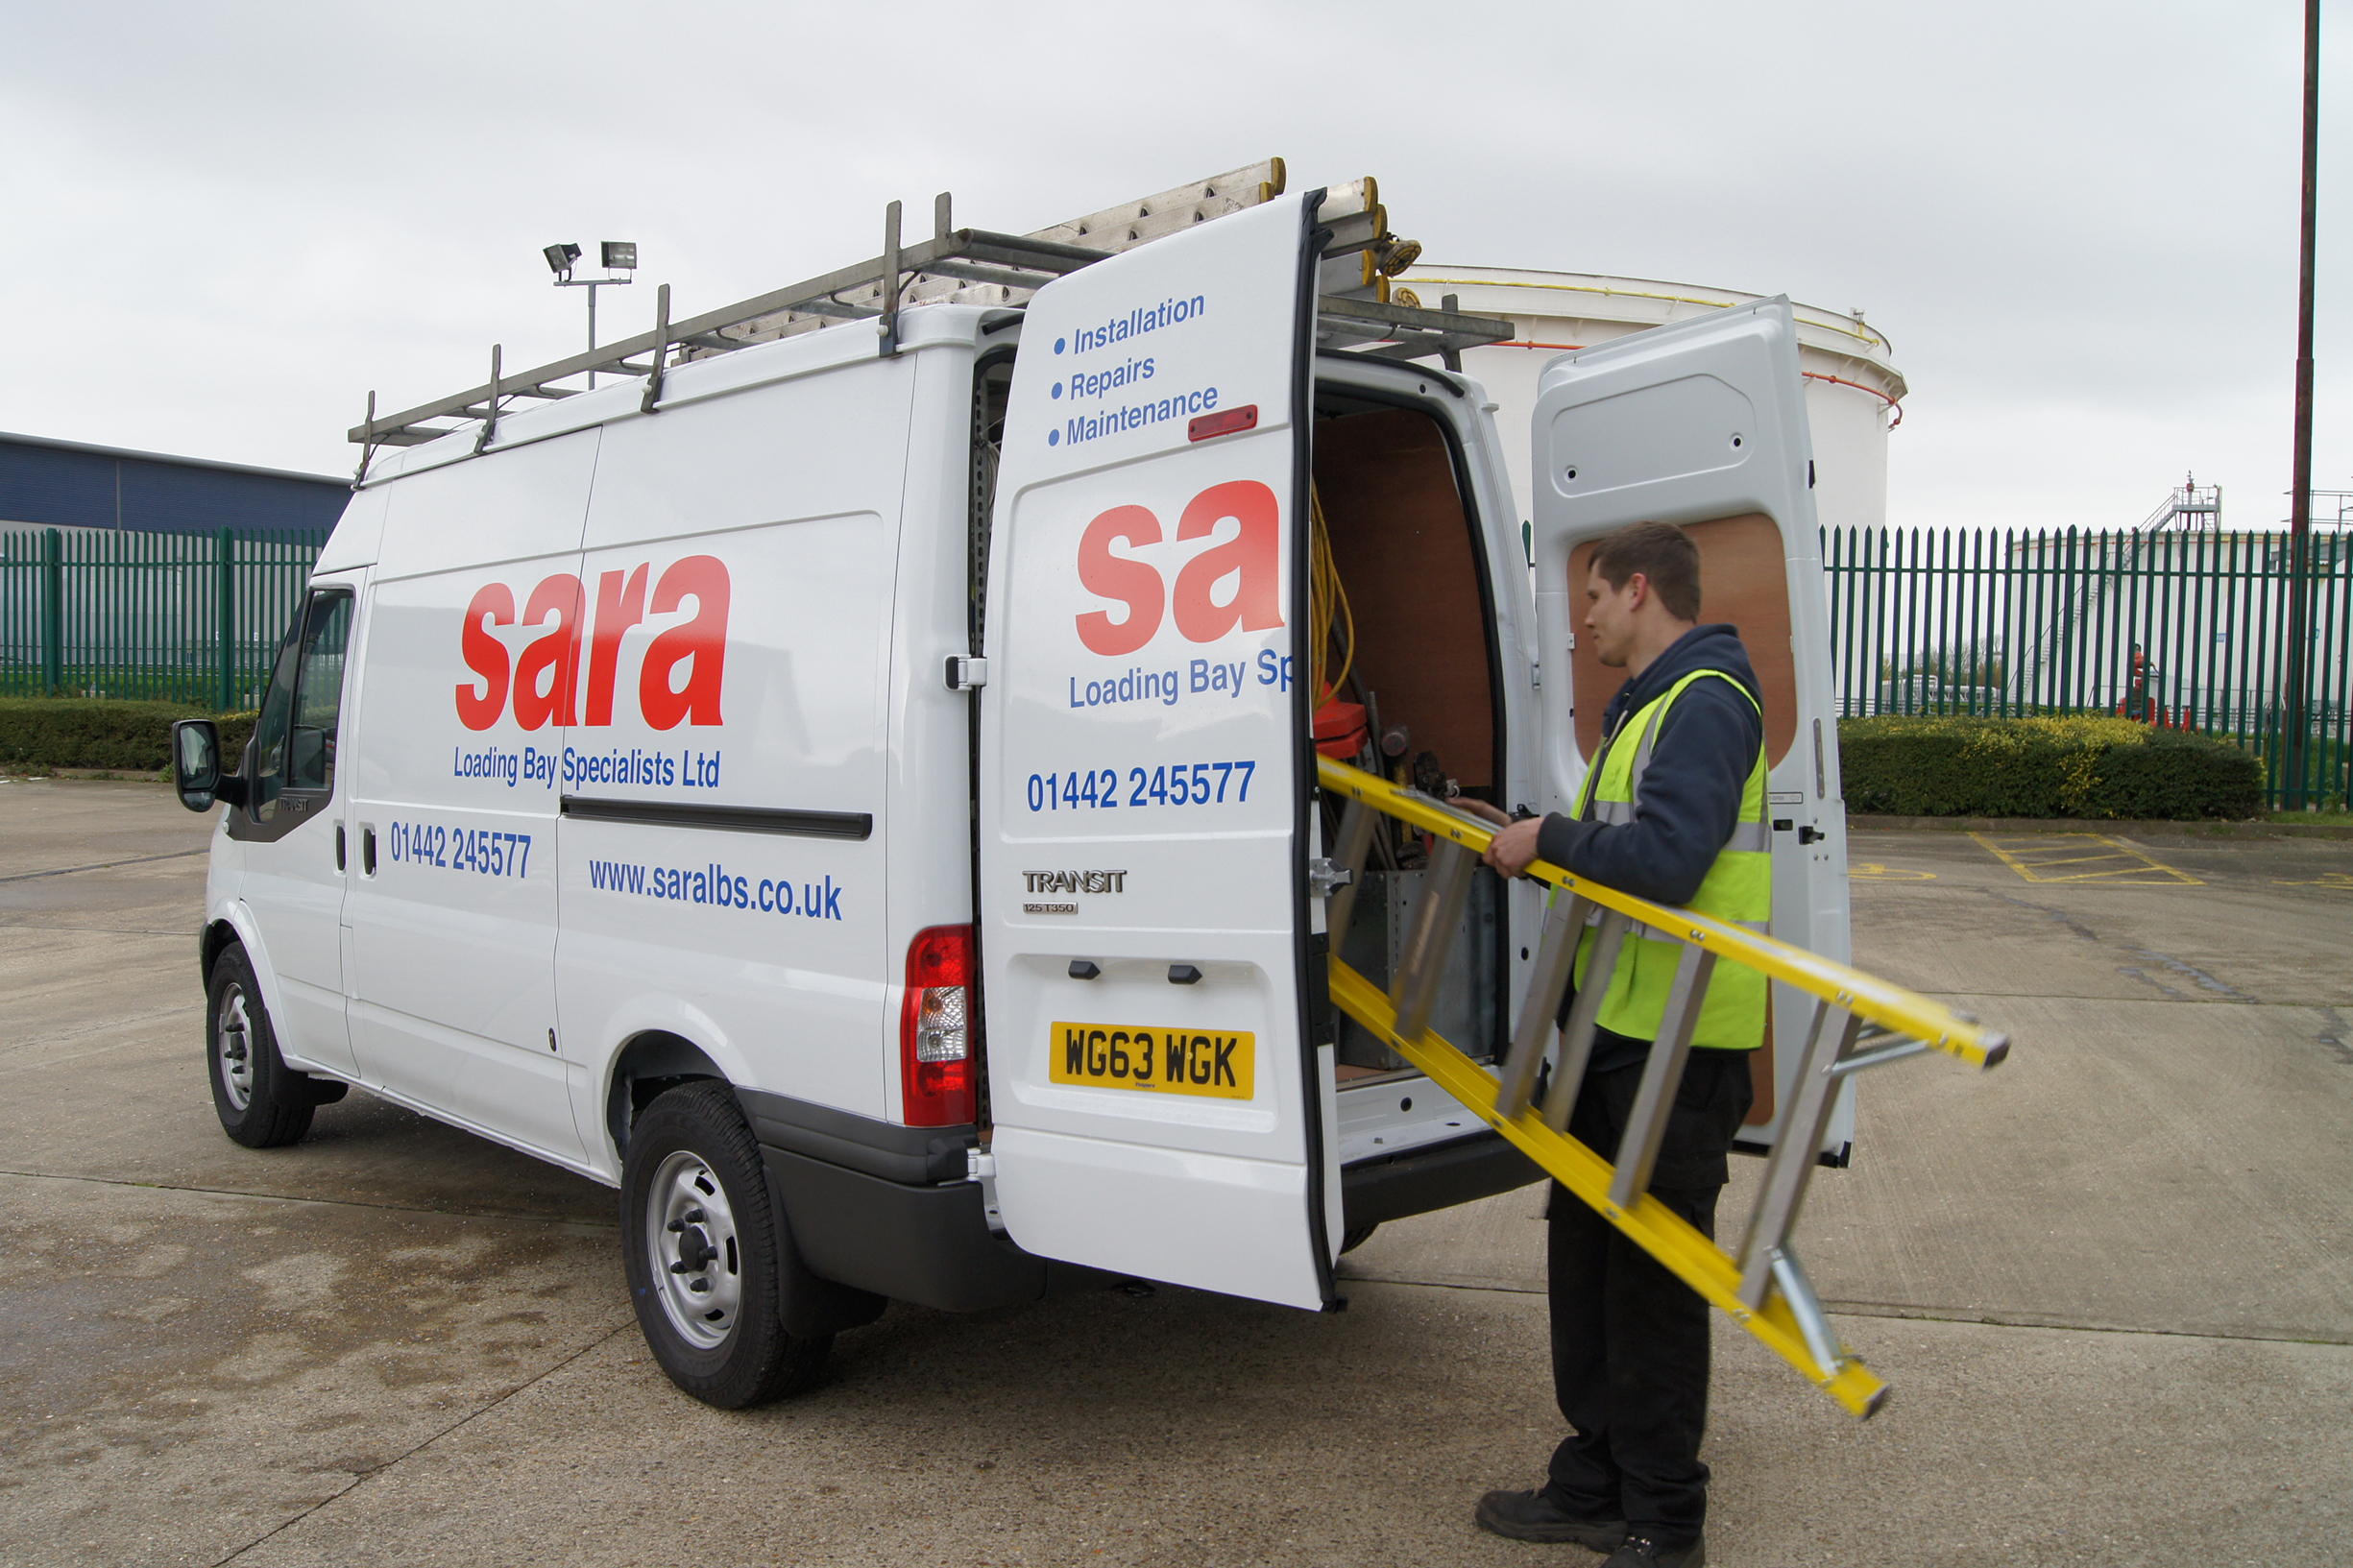 sara LBS servicing helps keep loading bays safe and efficient